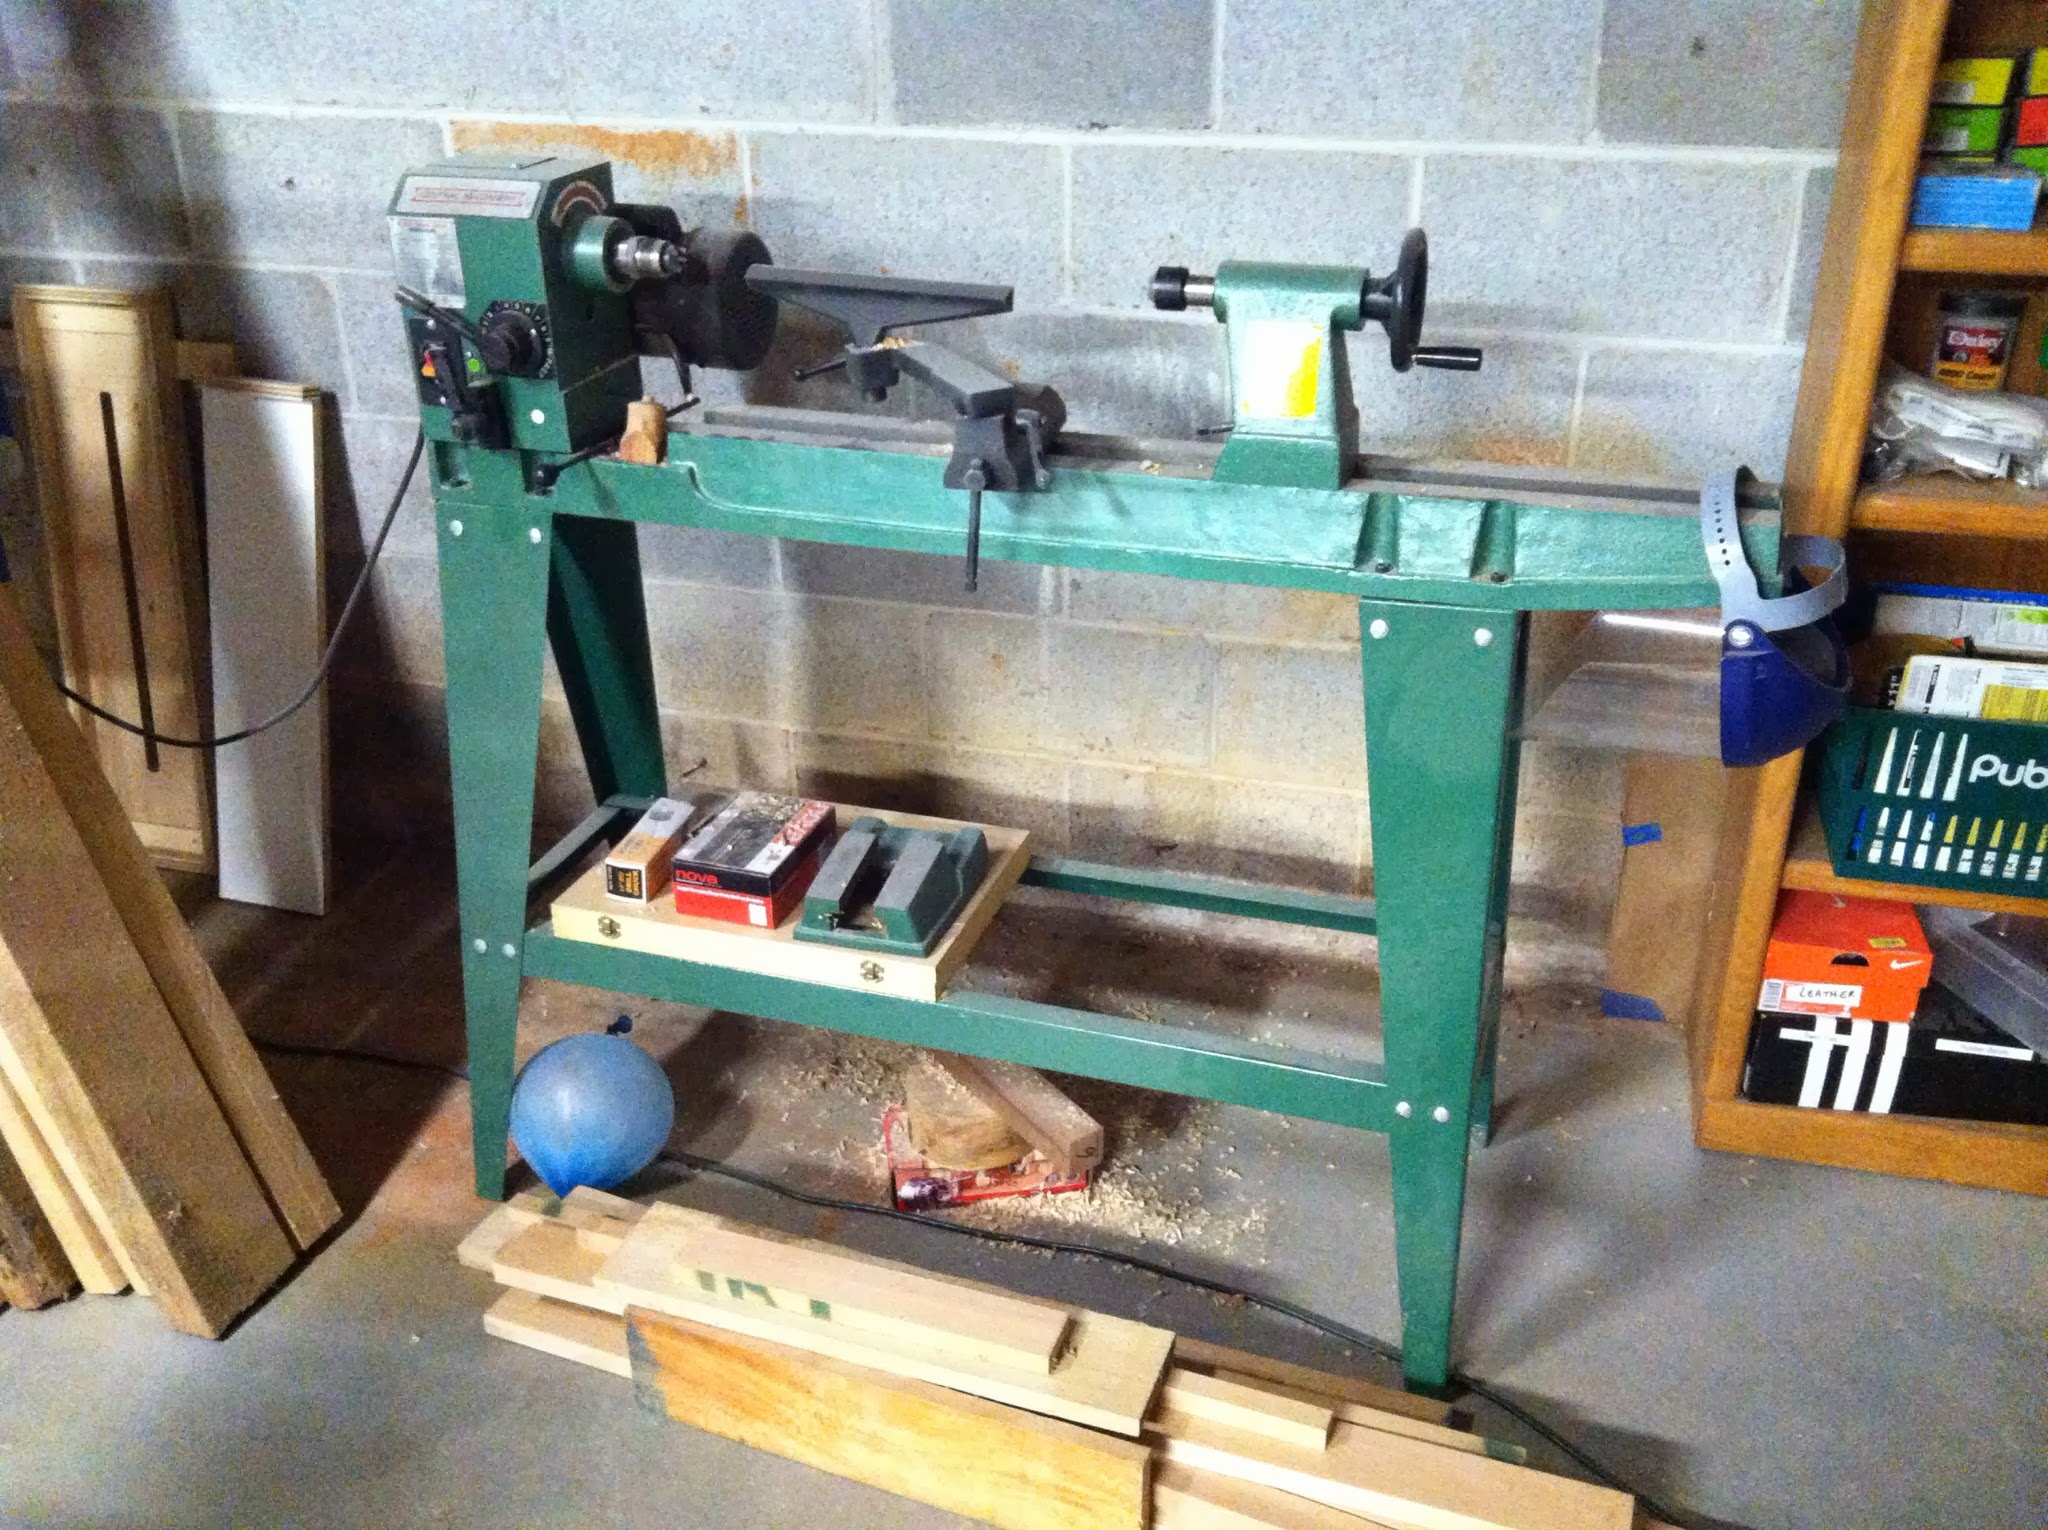 Harbor Freight lathe manual for central machinery wood lathe manual books